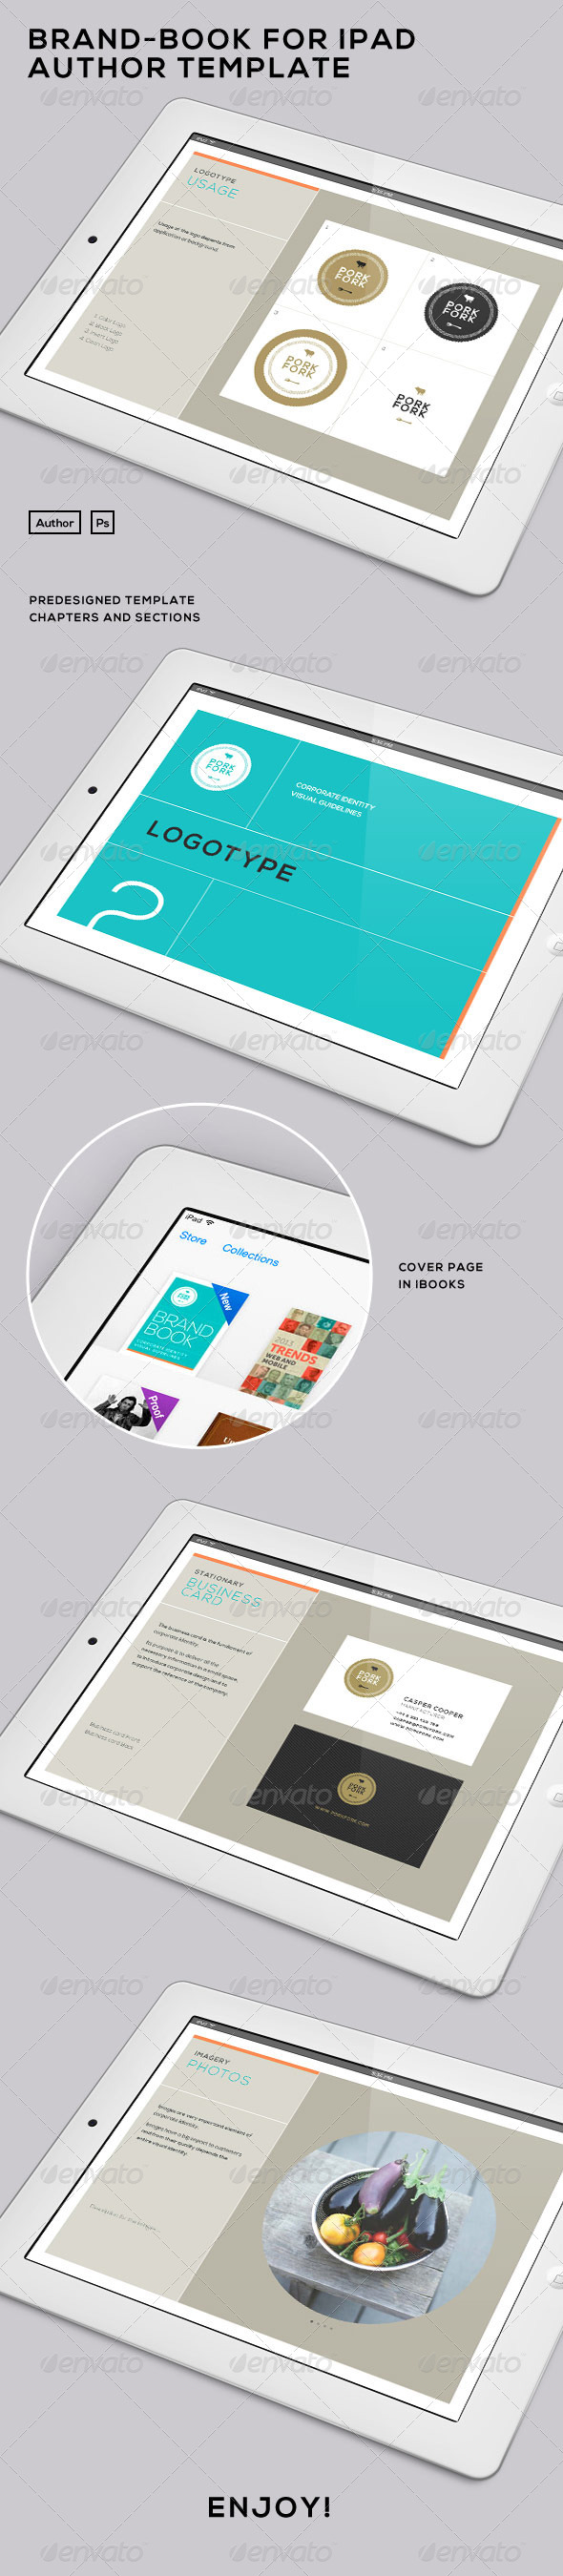 GraphicRiver Brand Book for iPad iBooks Author Template 6961519